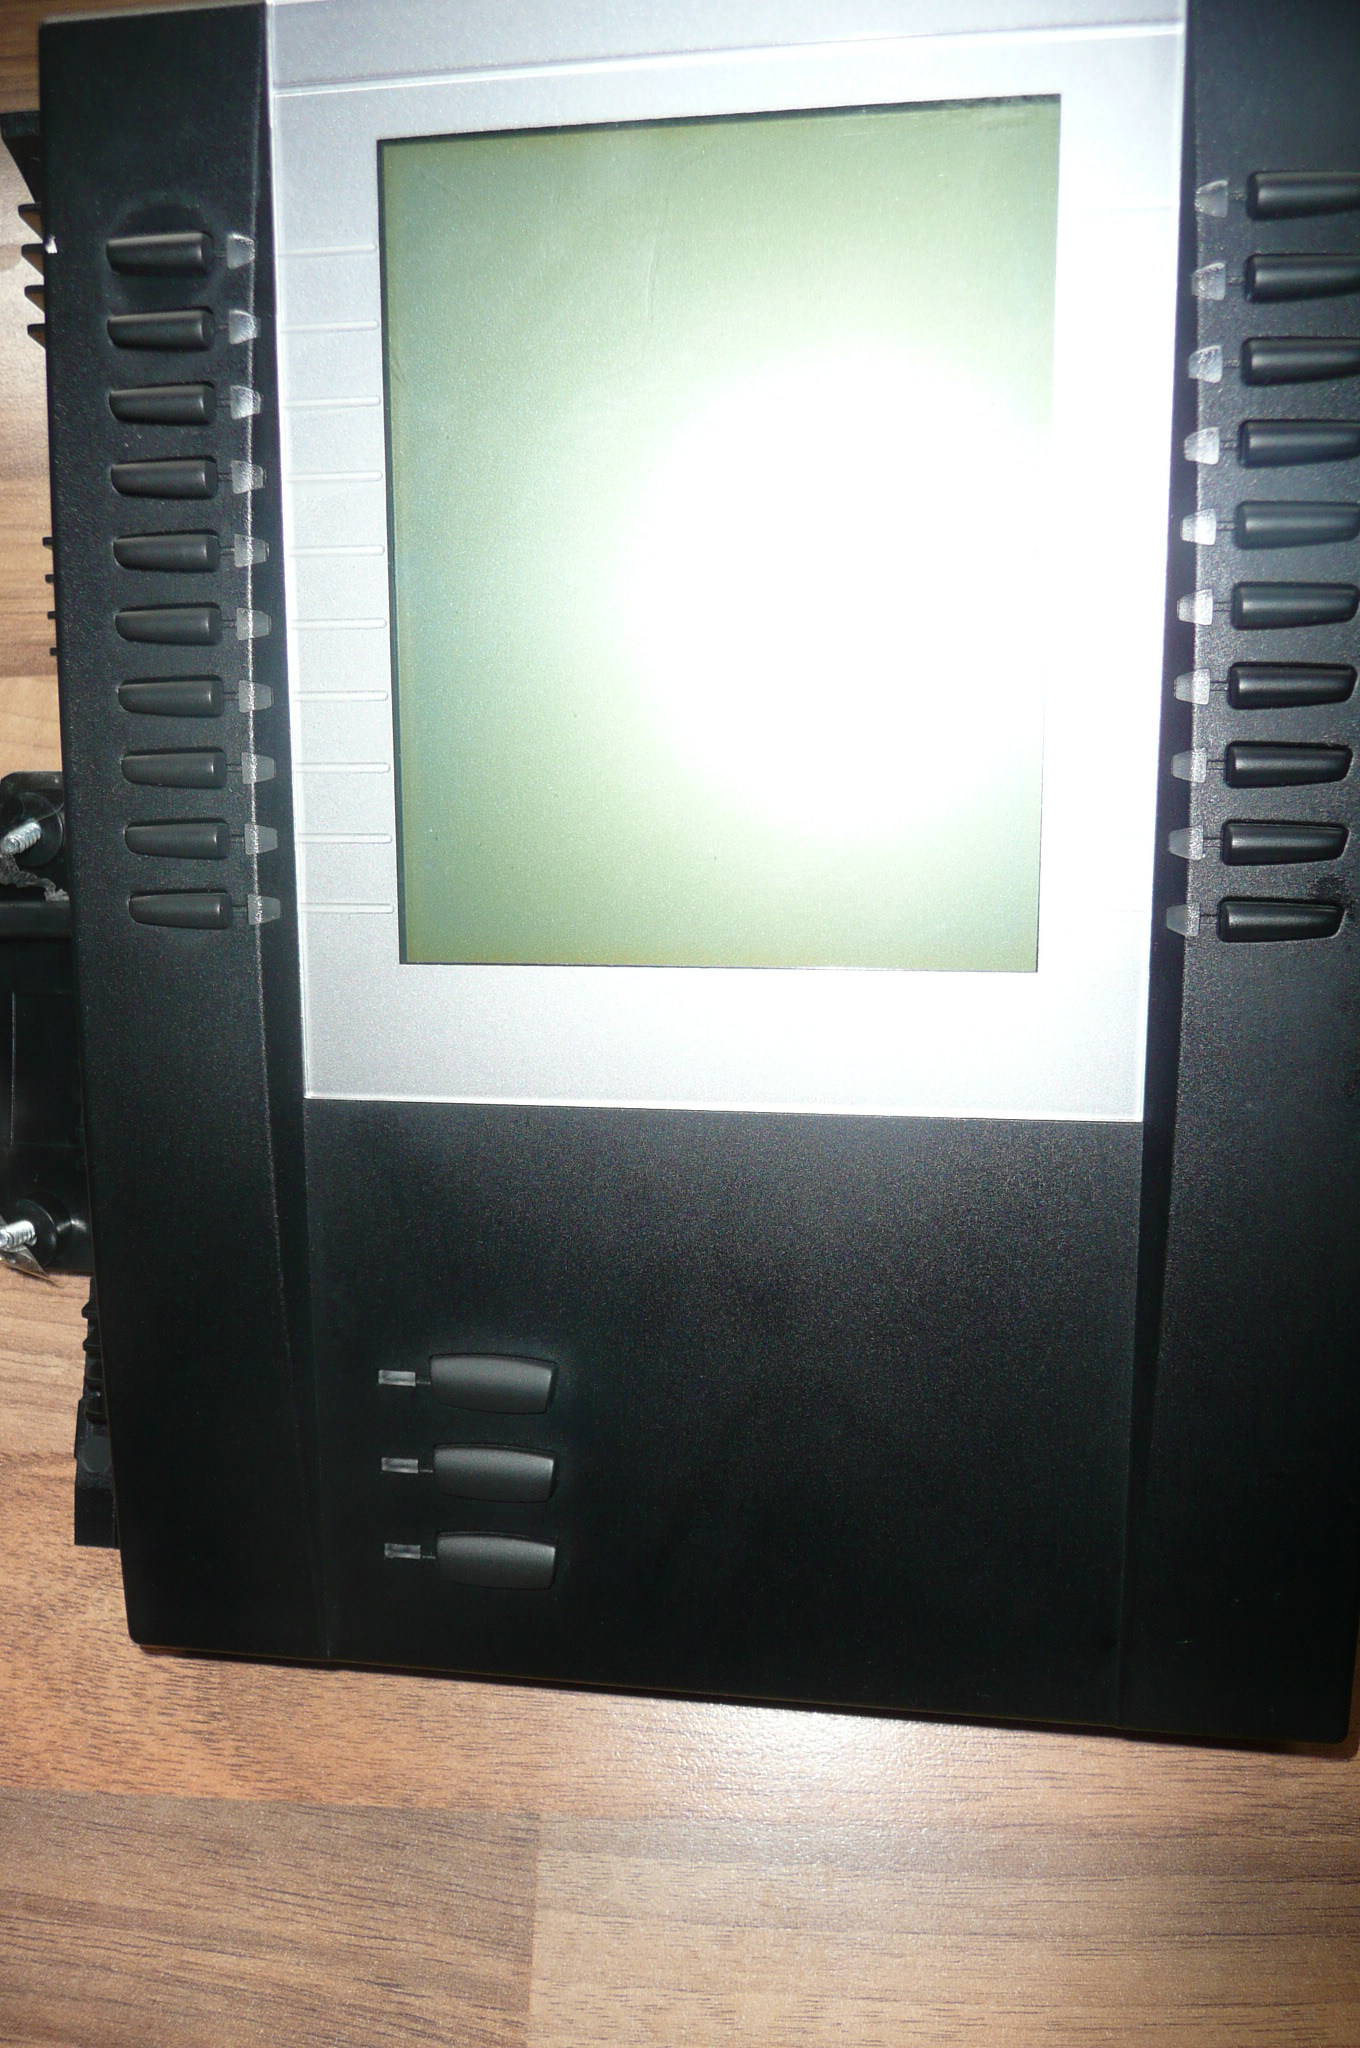 Forum 500 Keypad Display FP 535